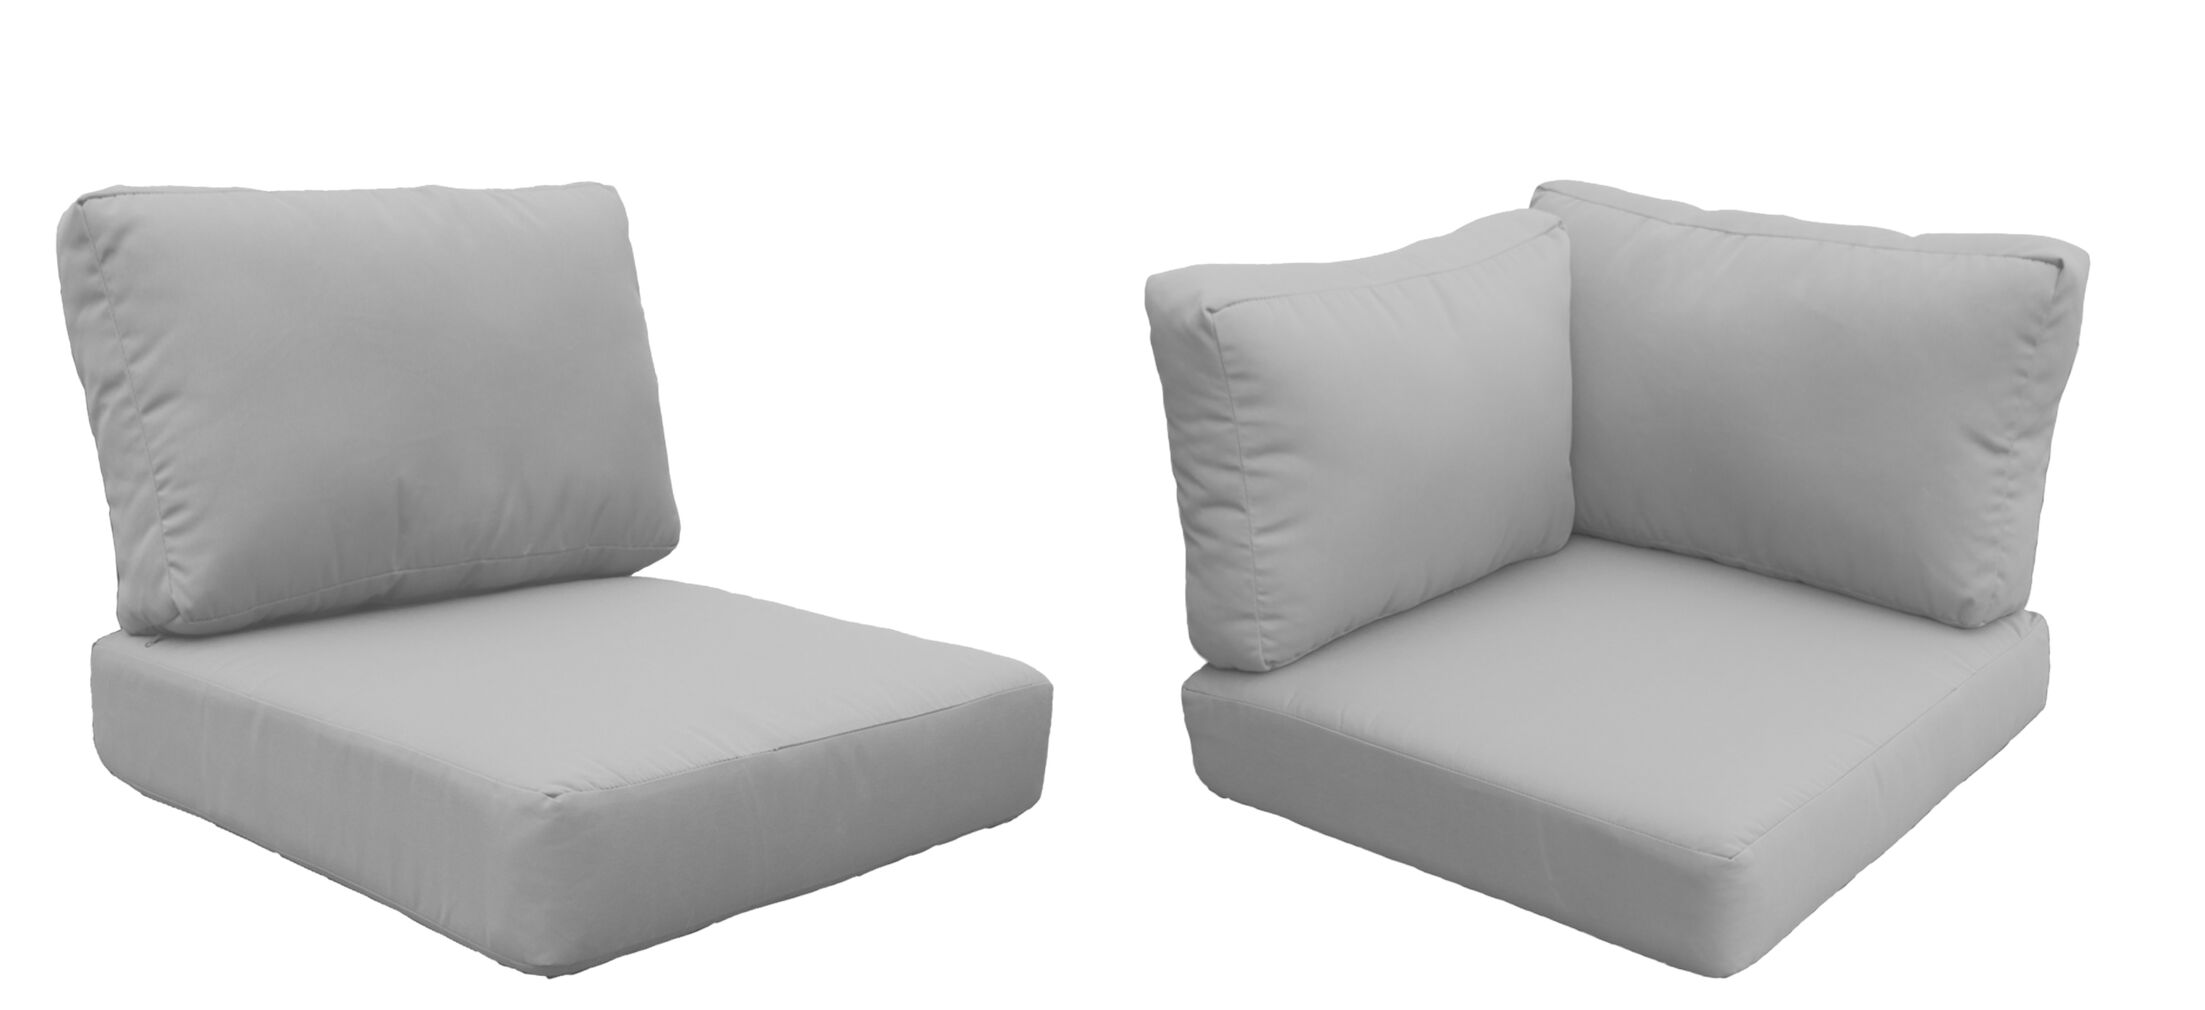 Fairmont 15 Piece Outdoor�Lounge Chair Cushion Set Fabric: Gray